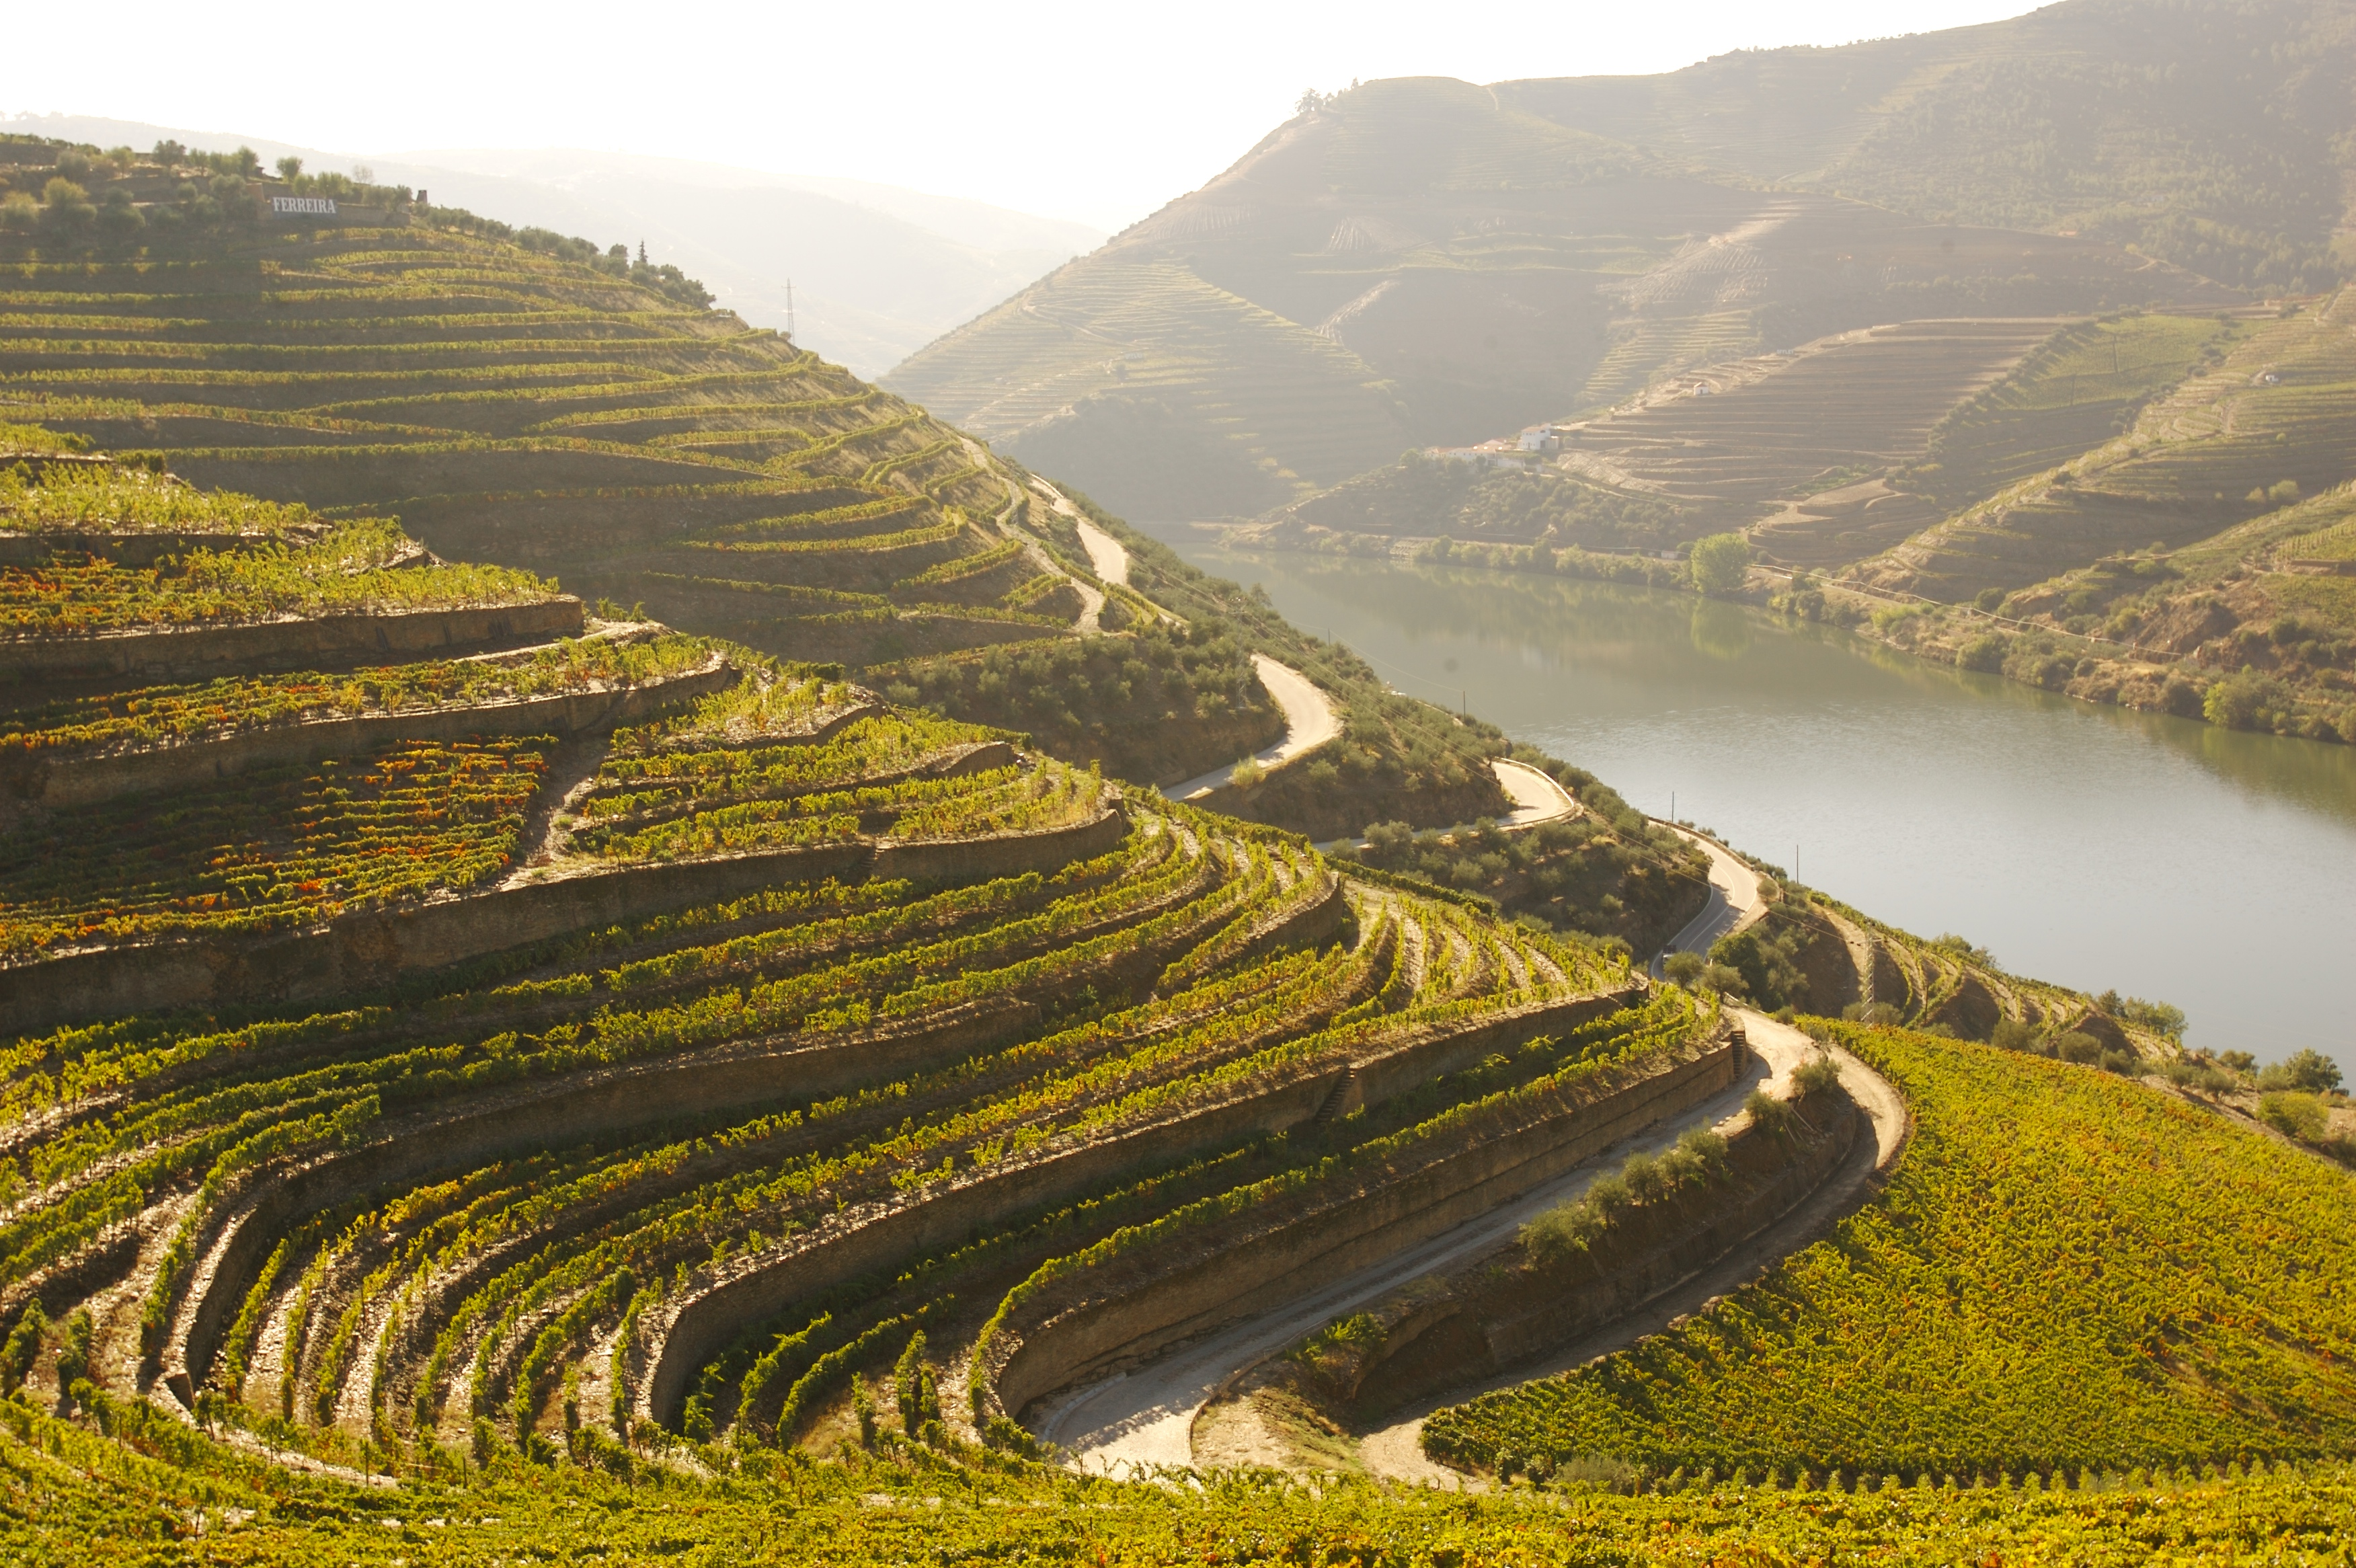 The cultural landscape of the Douro Valley was classified World Heritage in 2001.